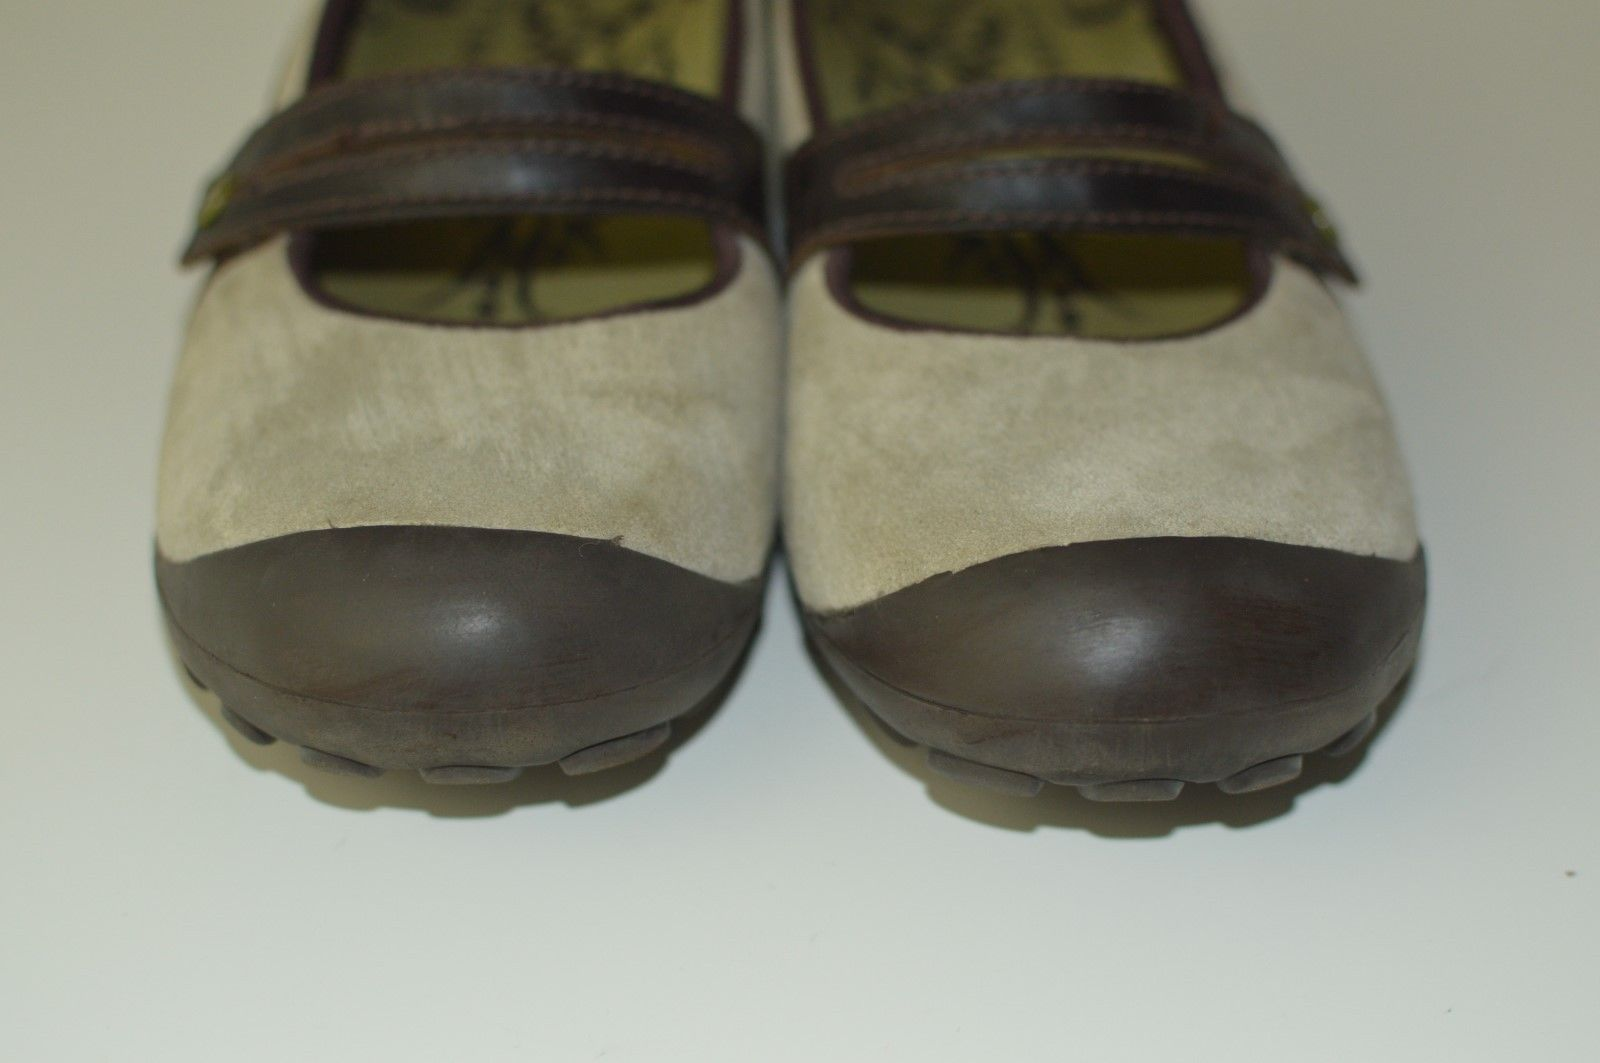 MERRELL TAN SUEDE AND BROWN LEATHER MARY JANES WOMENS SHOES SIZE 10